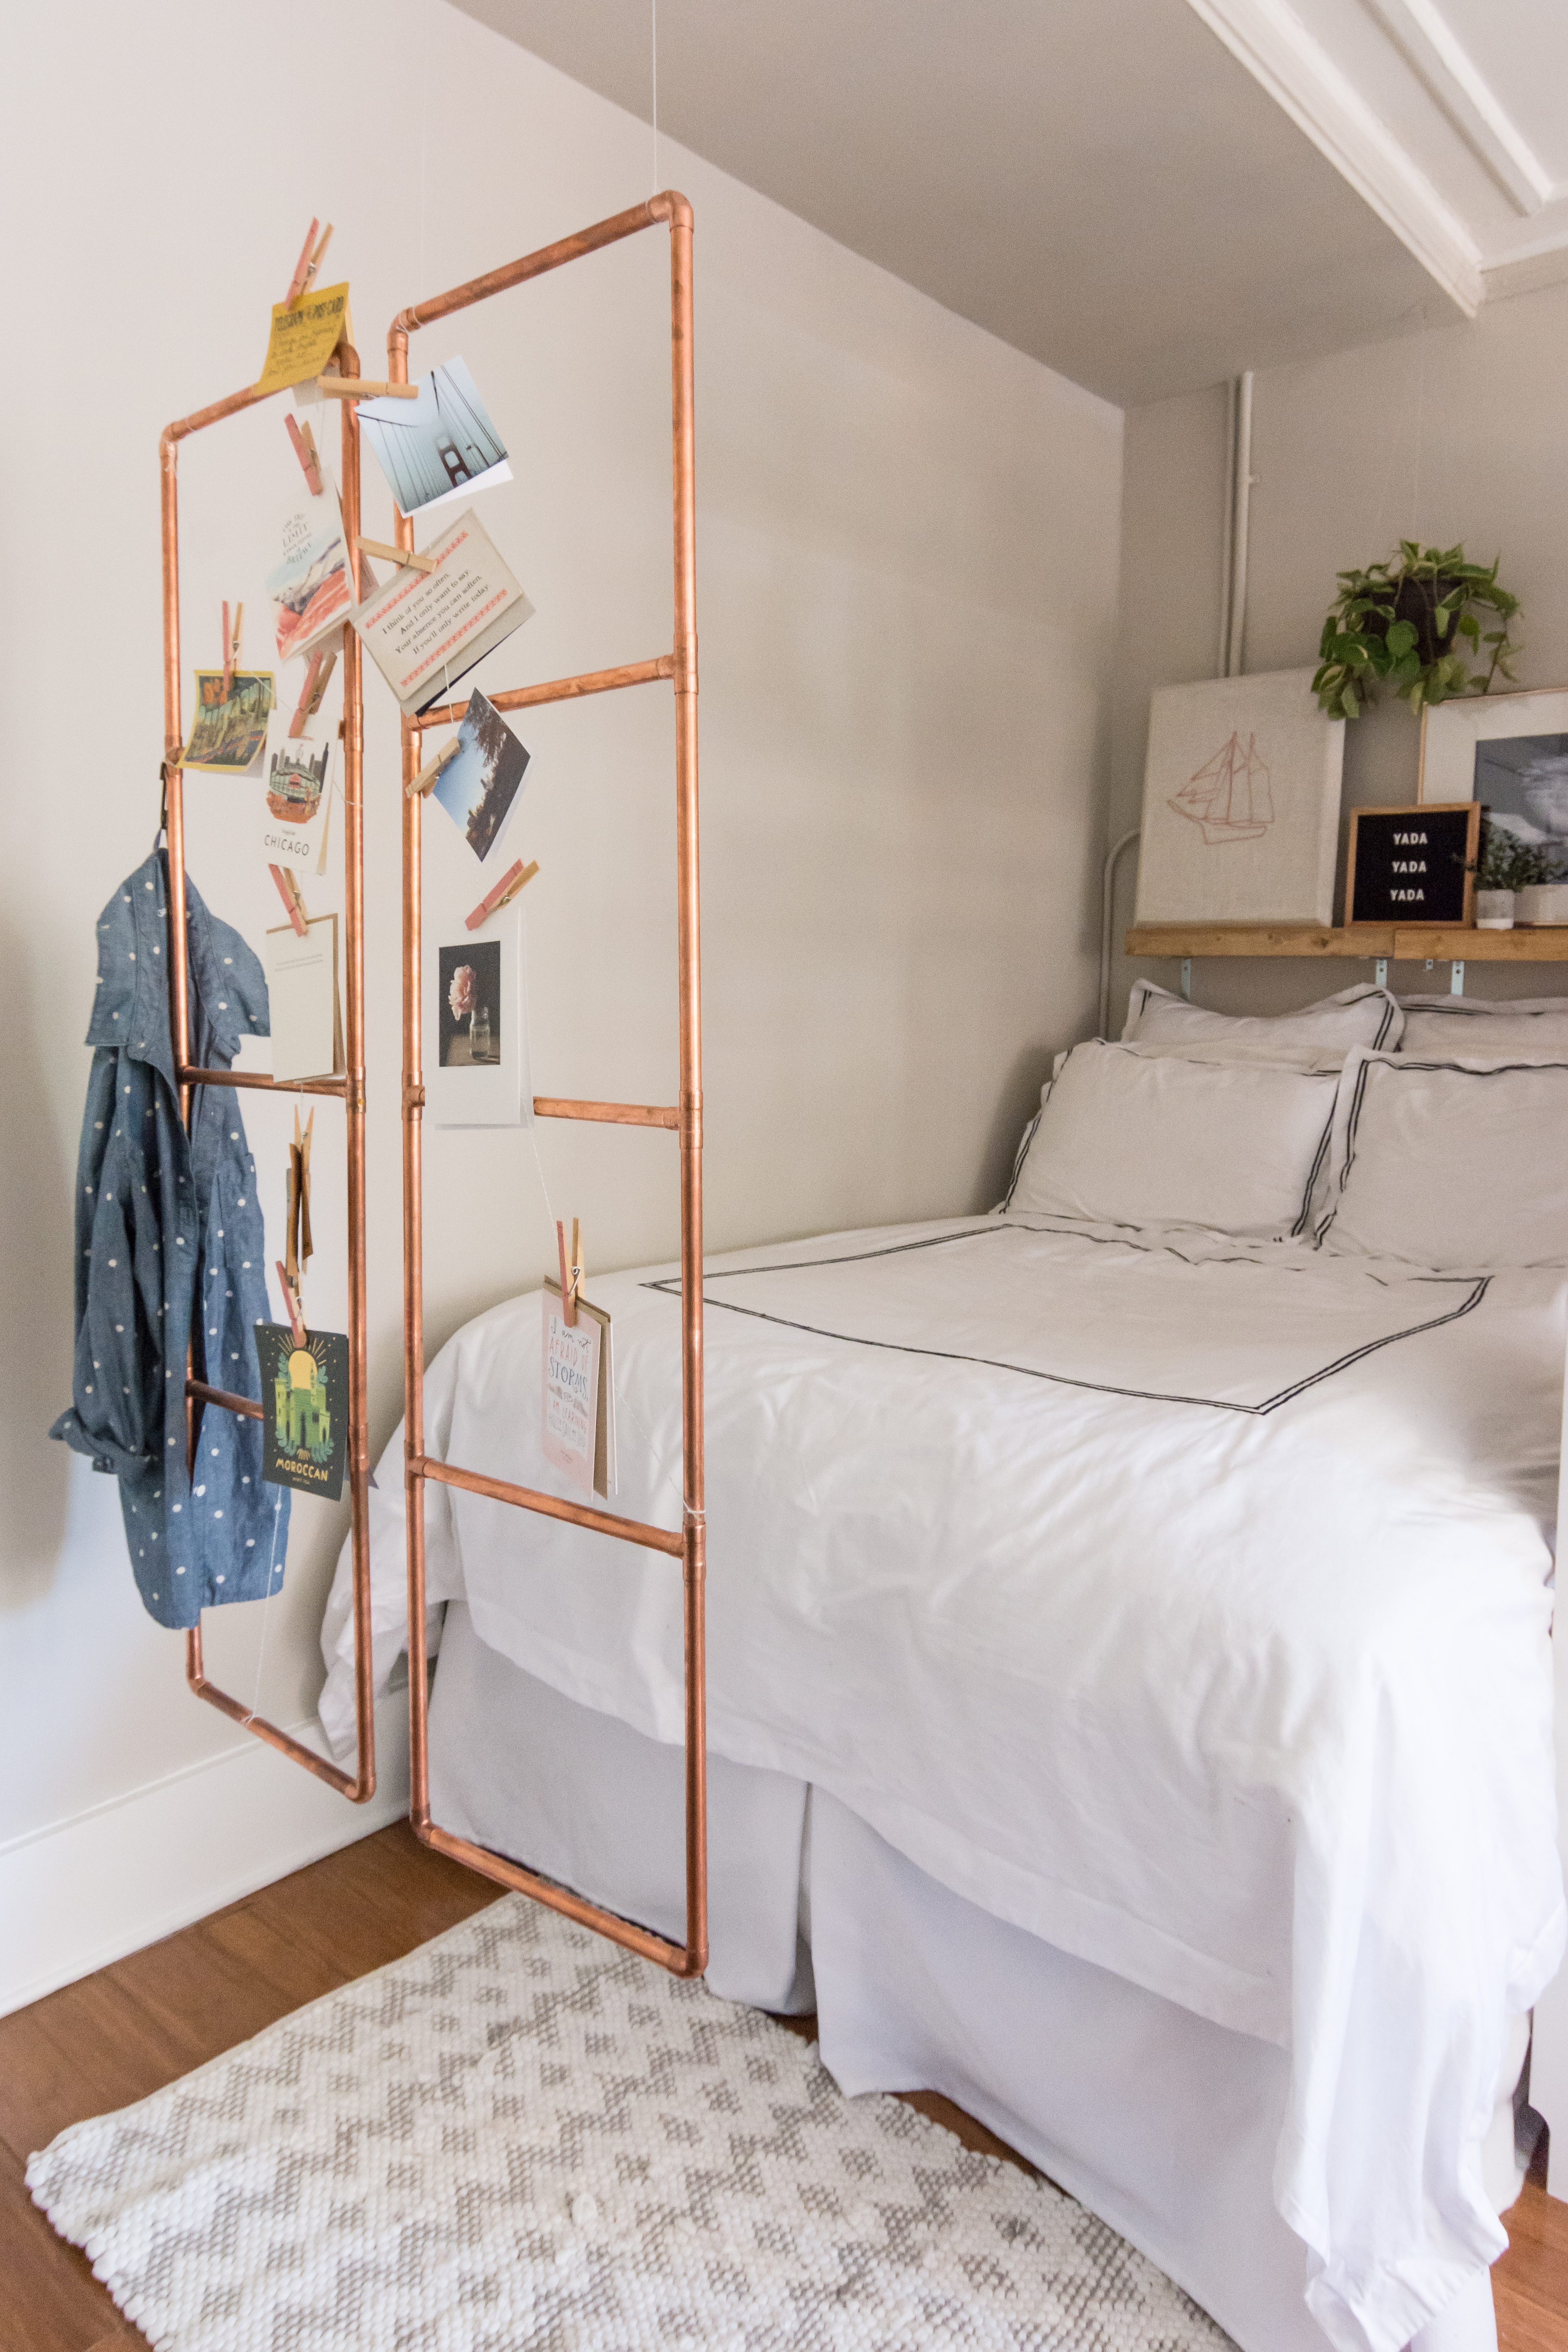 How To Make a Clever & Easy DIY Copper Room Divider ...